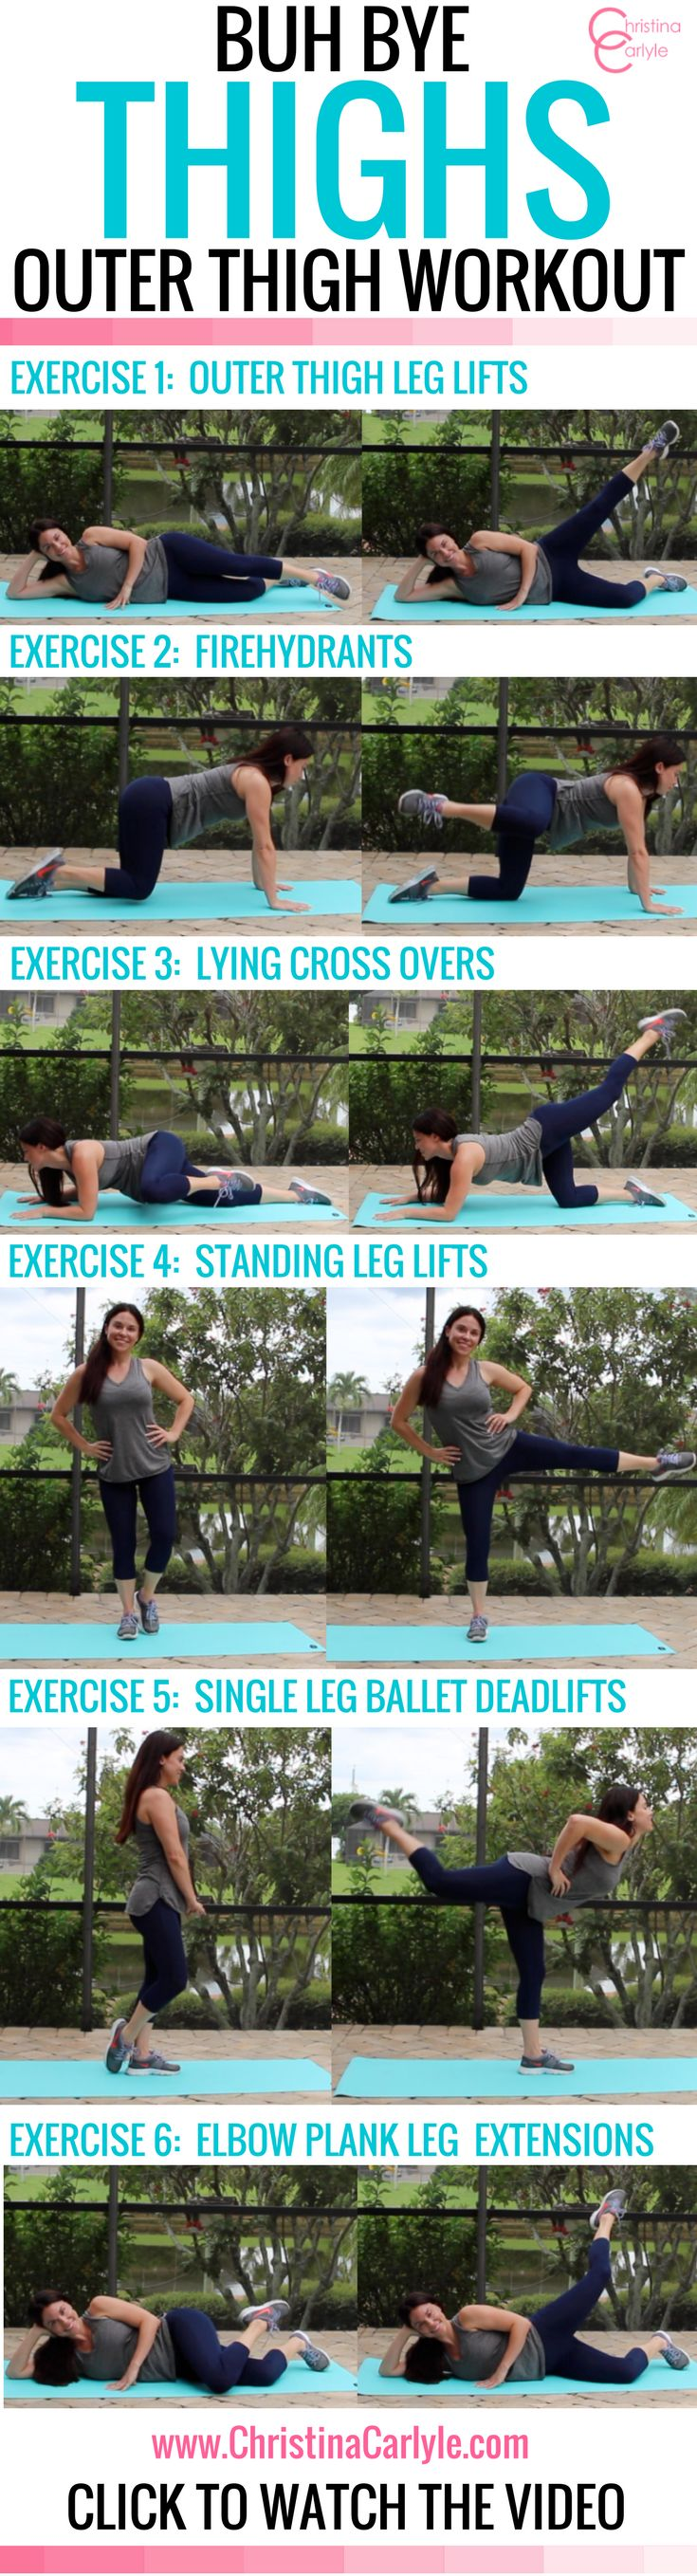 This Thigh Workout For Women uses thigh exercises that also target the abs and will help you tighten and tone your thighs.